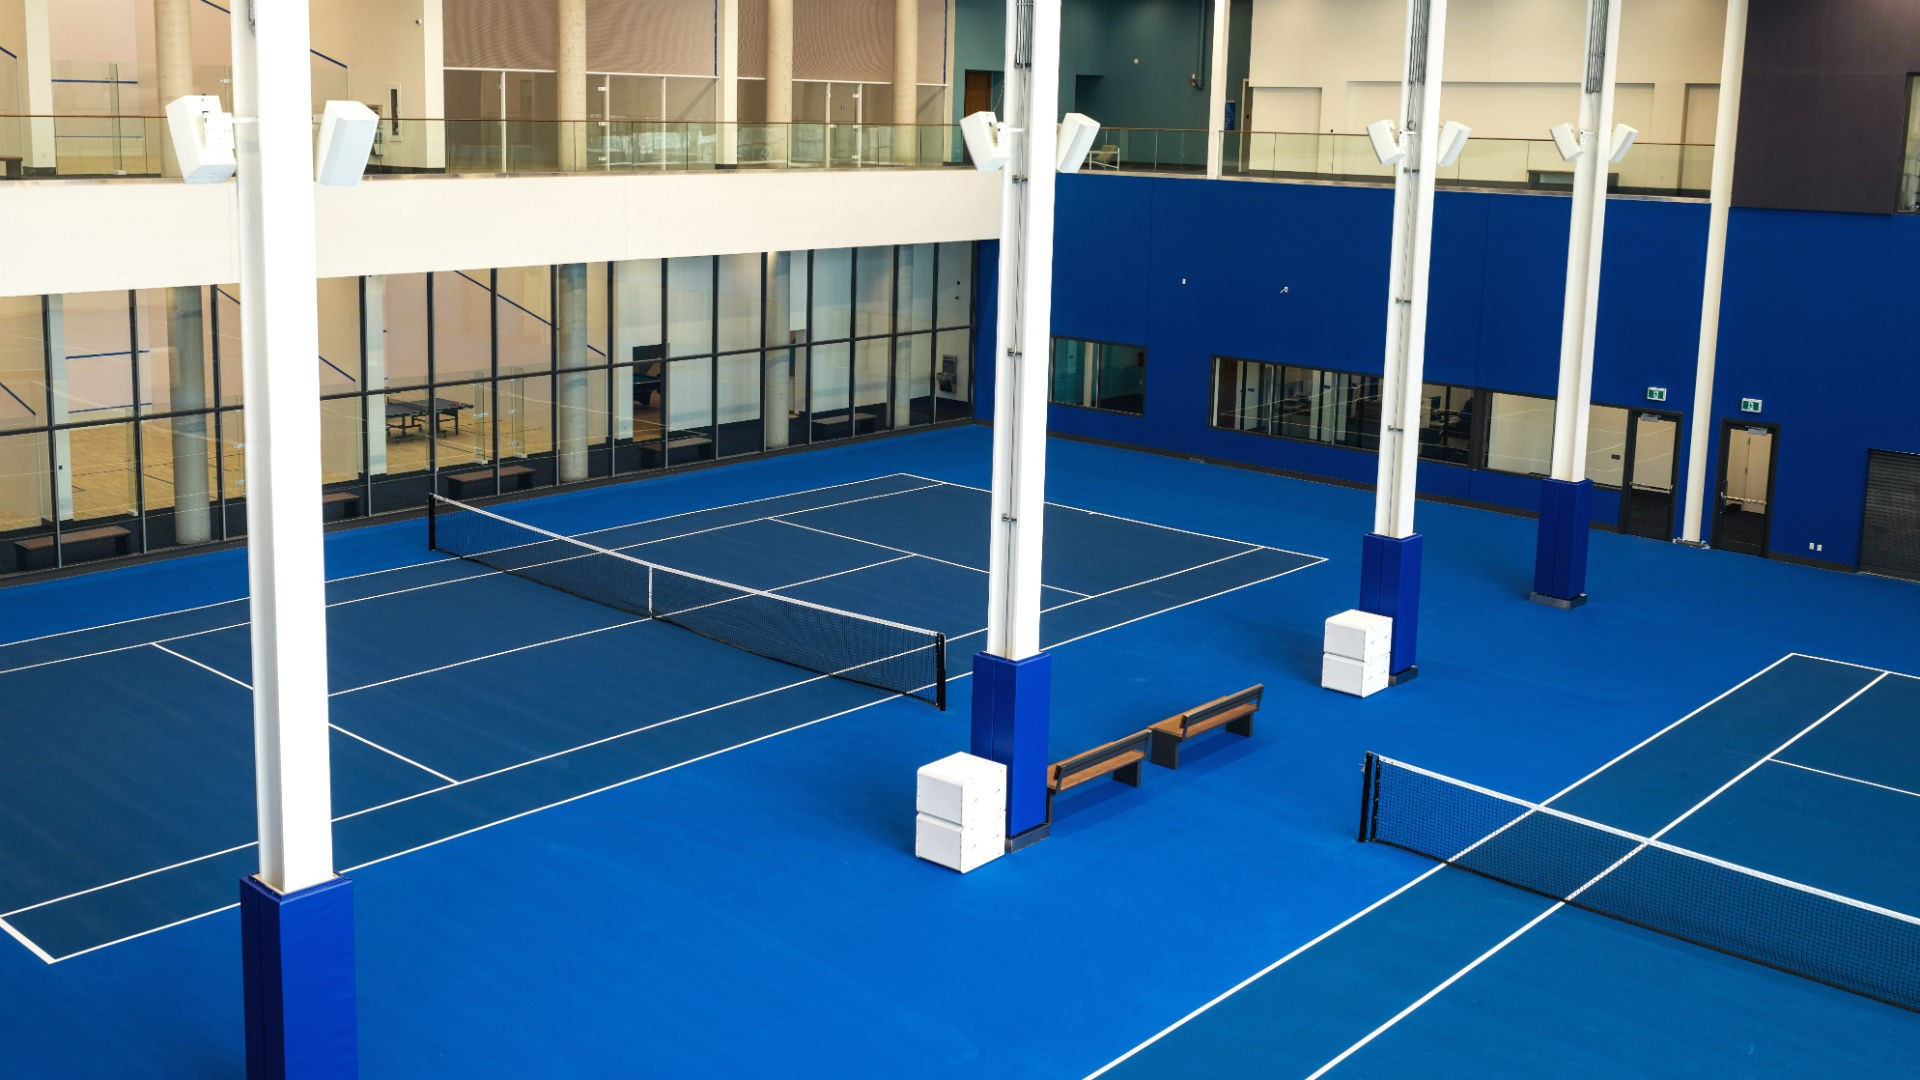 The best Toronto hotels for a staycation | Indoor tennis courts at Hotel X